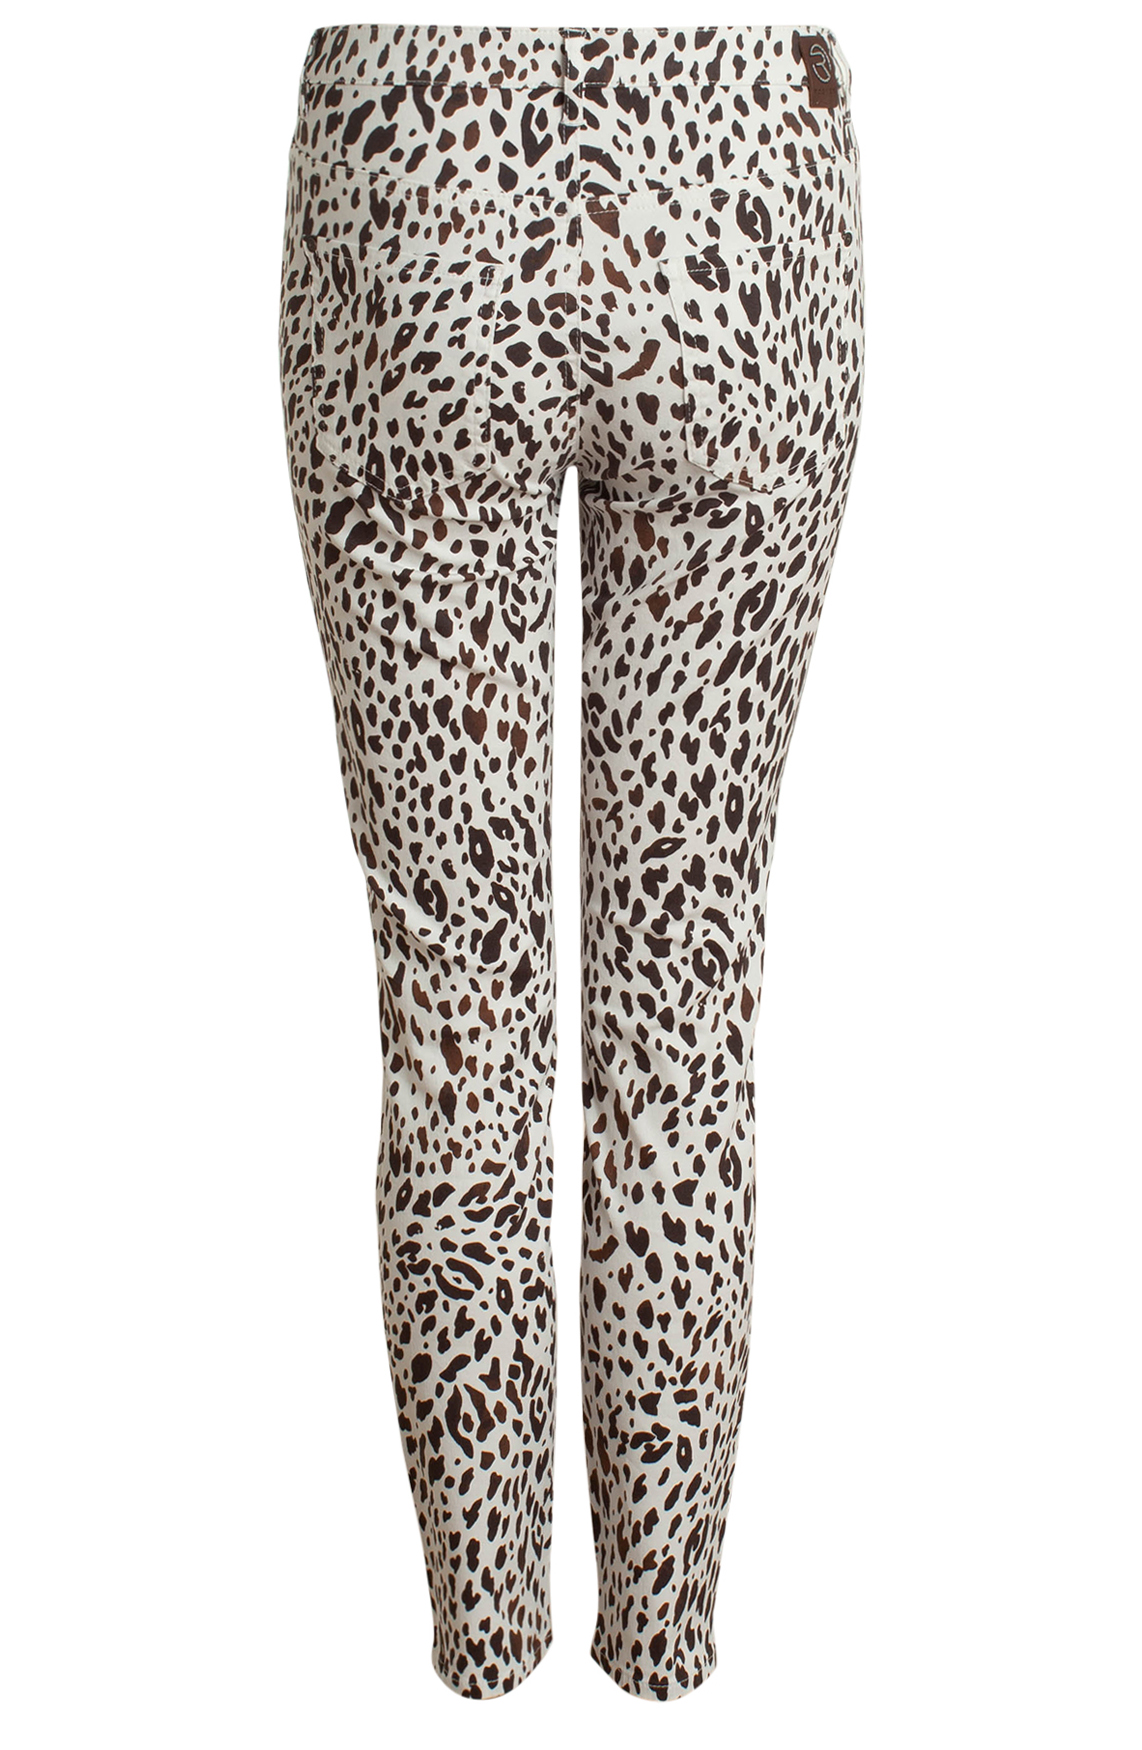 Rosner Dames Antonia broek met animalprint wit